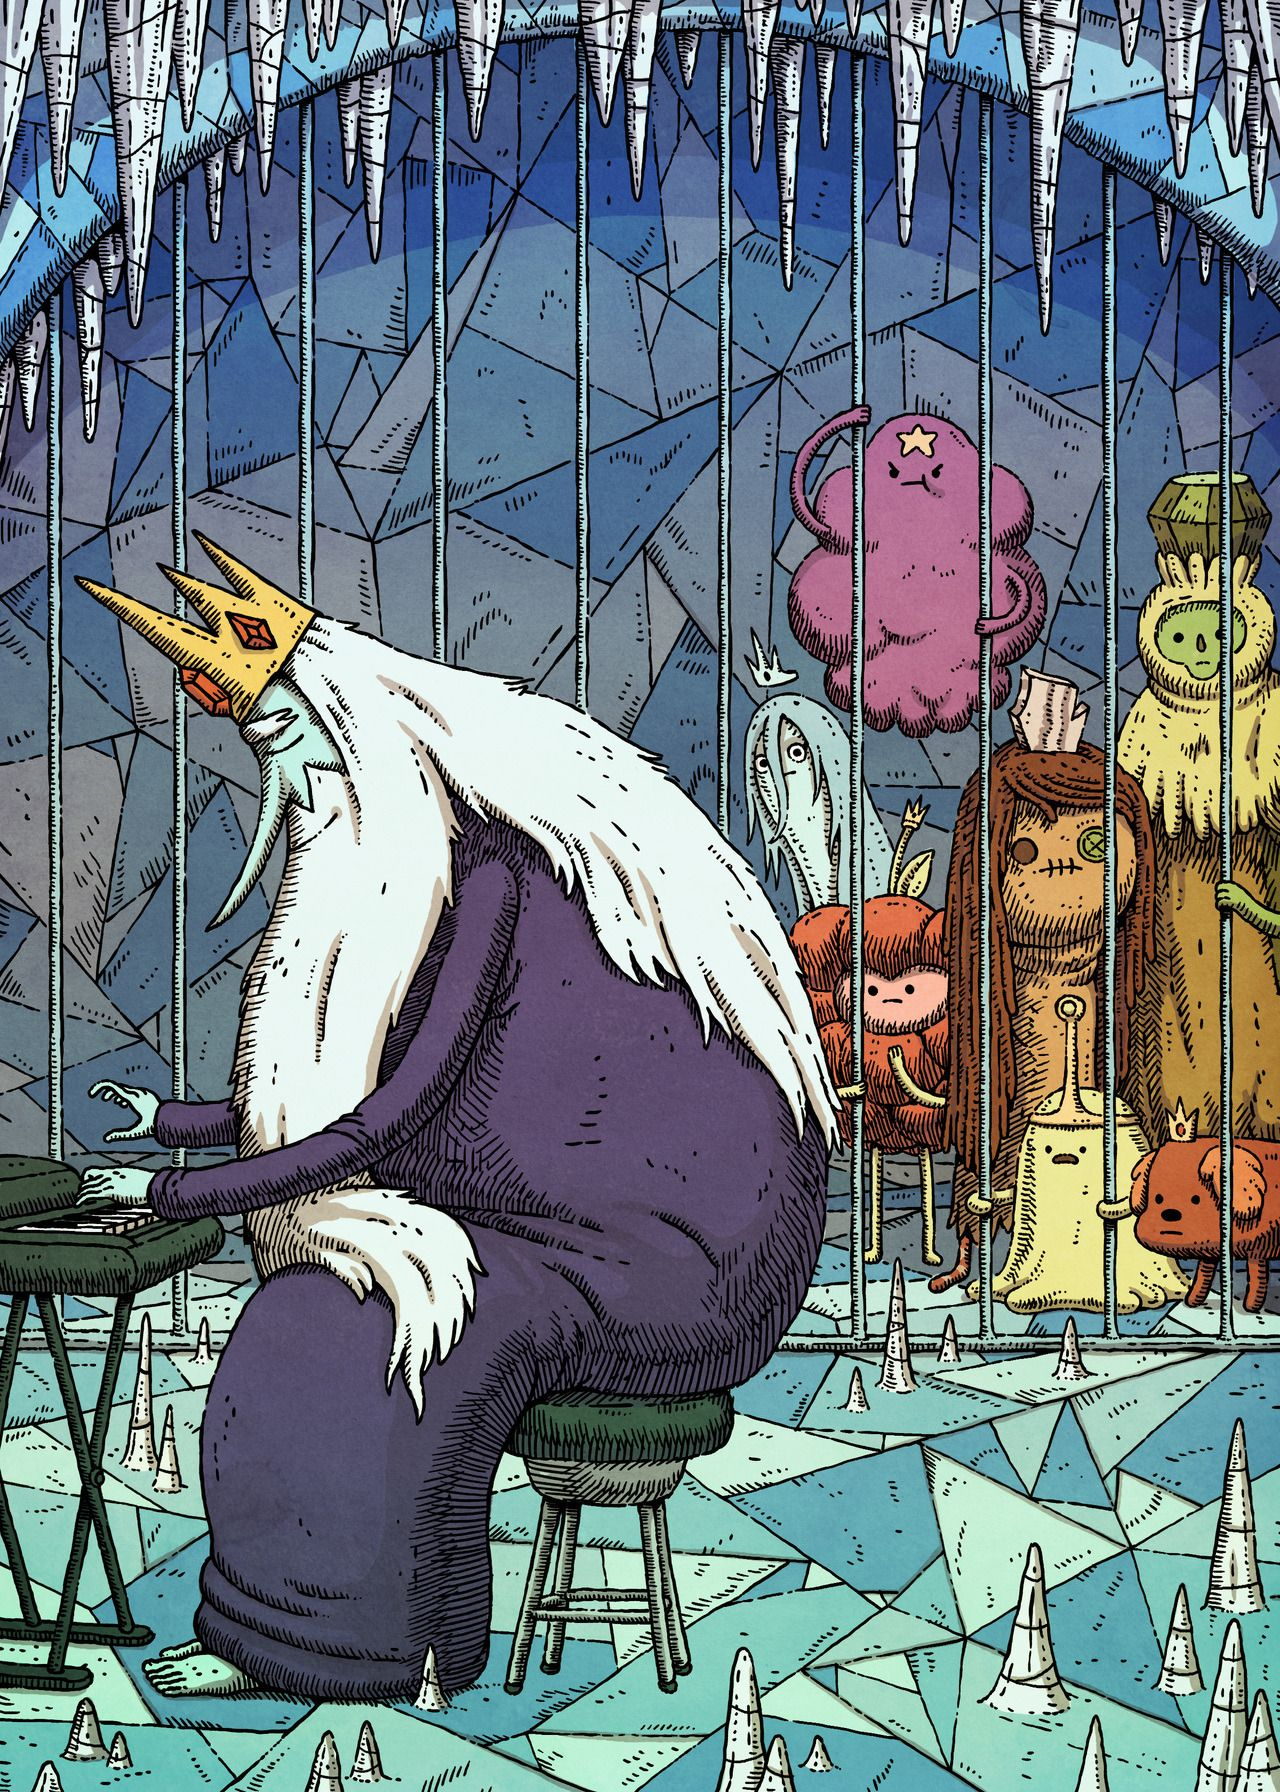 King of OOO (With images) Adventure time anime